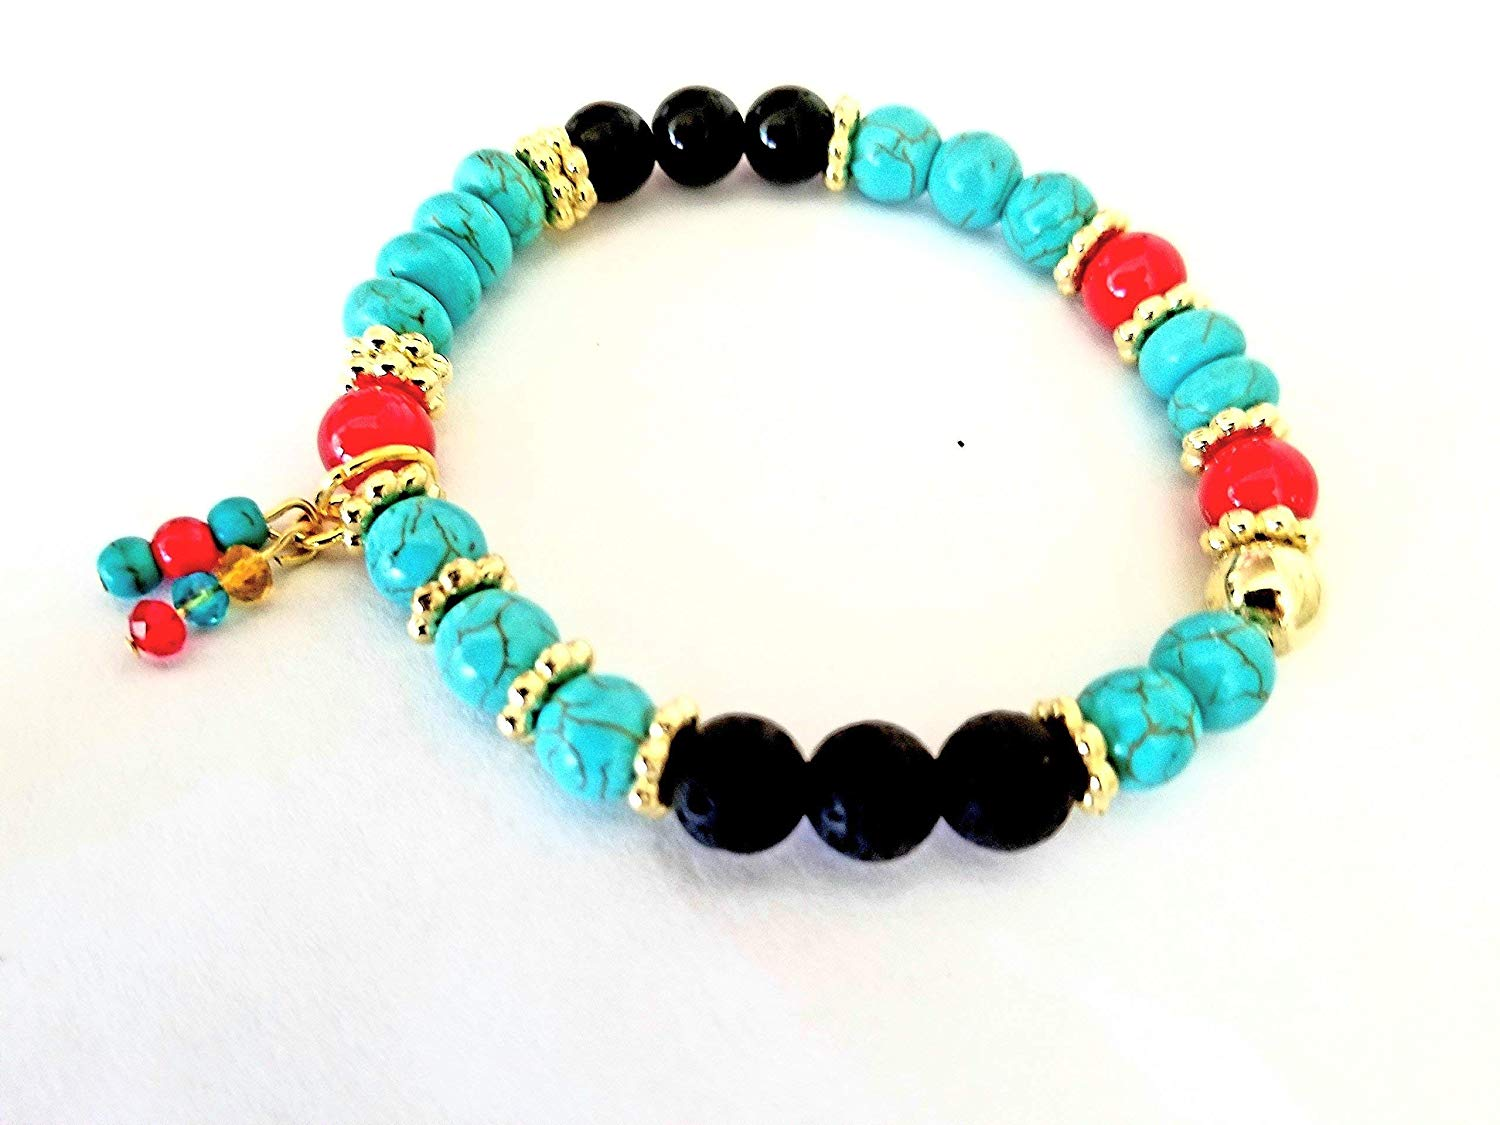 Stone Bead Stretch Bracelet with Red Coral, Turquoise, Onyx, and Lava Stone Essential Oil Diffuser Beads